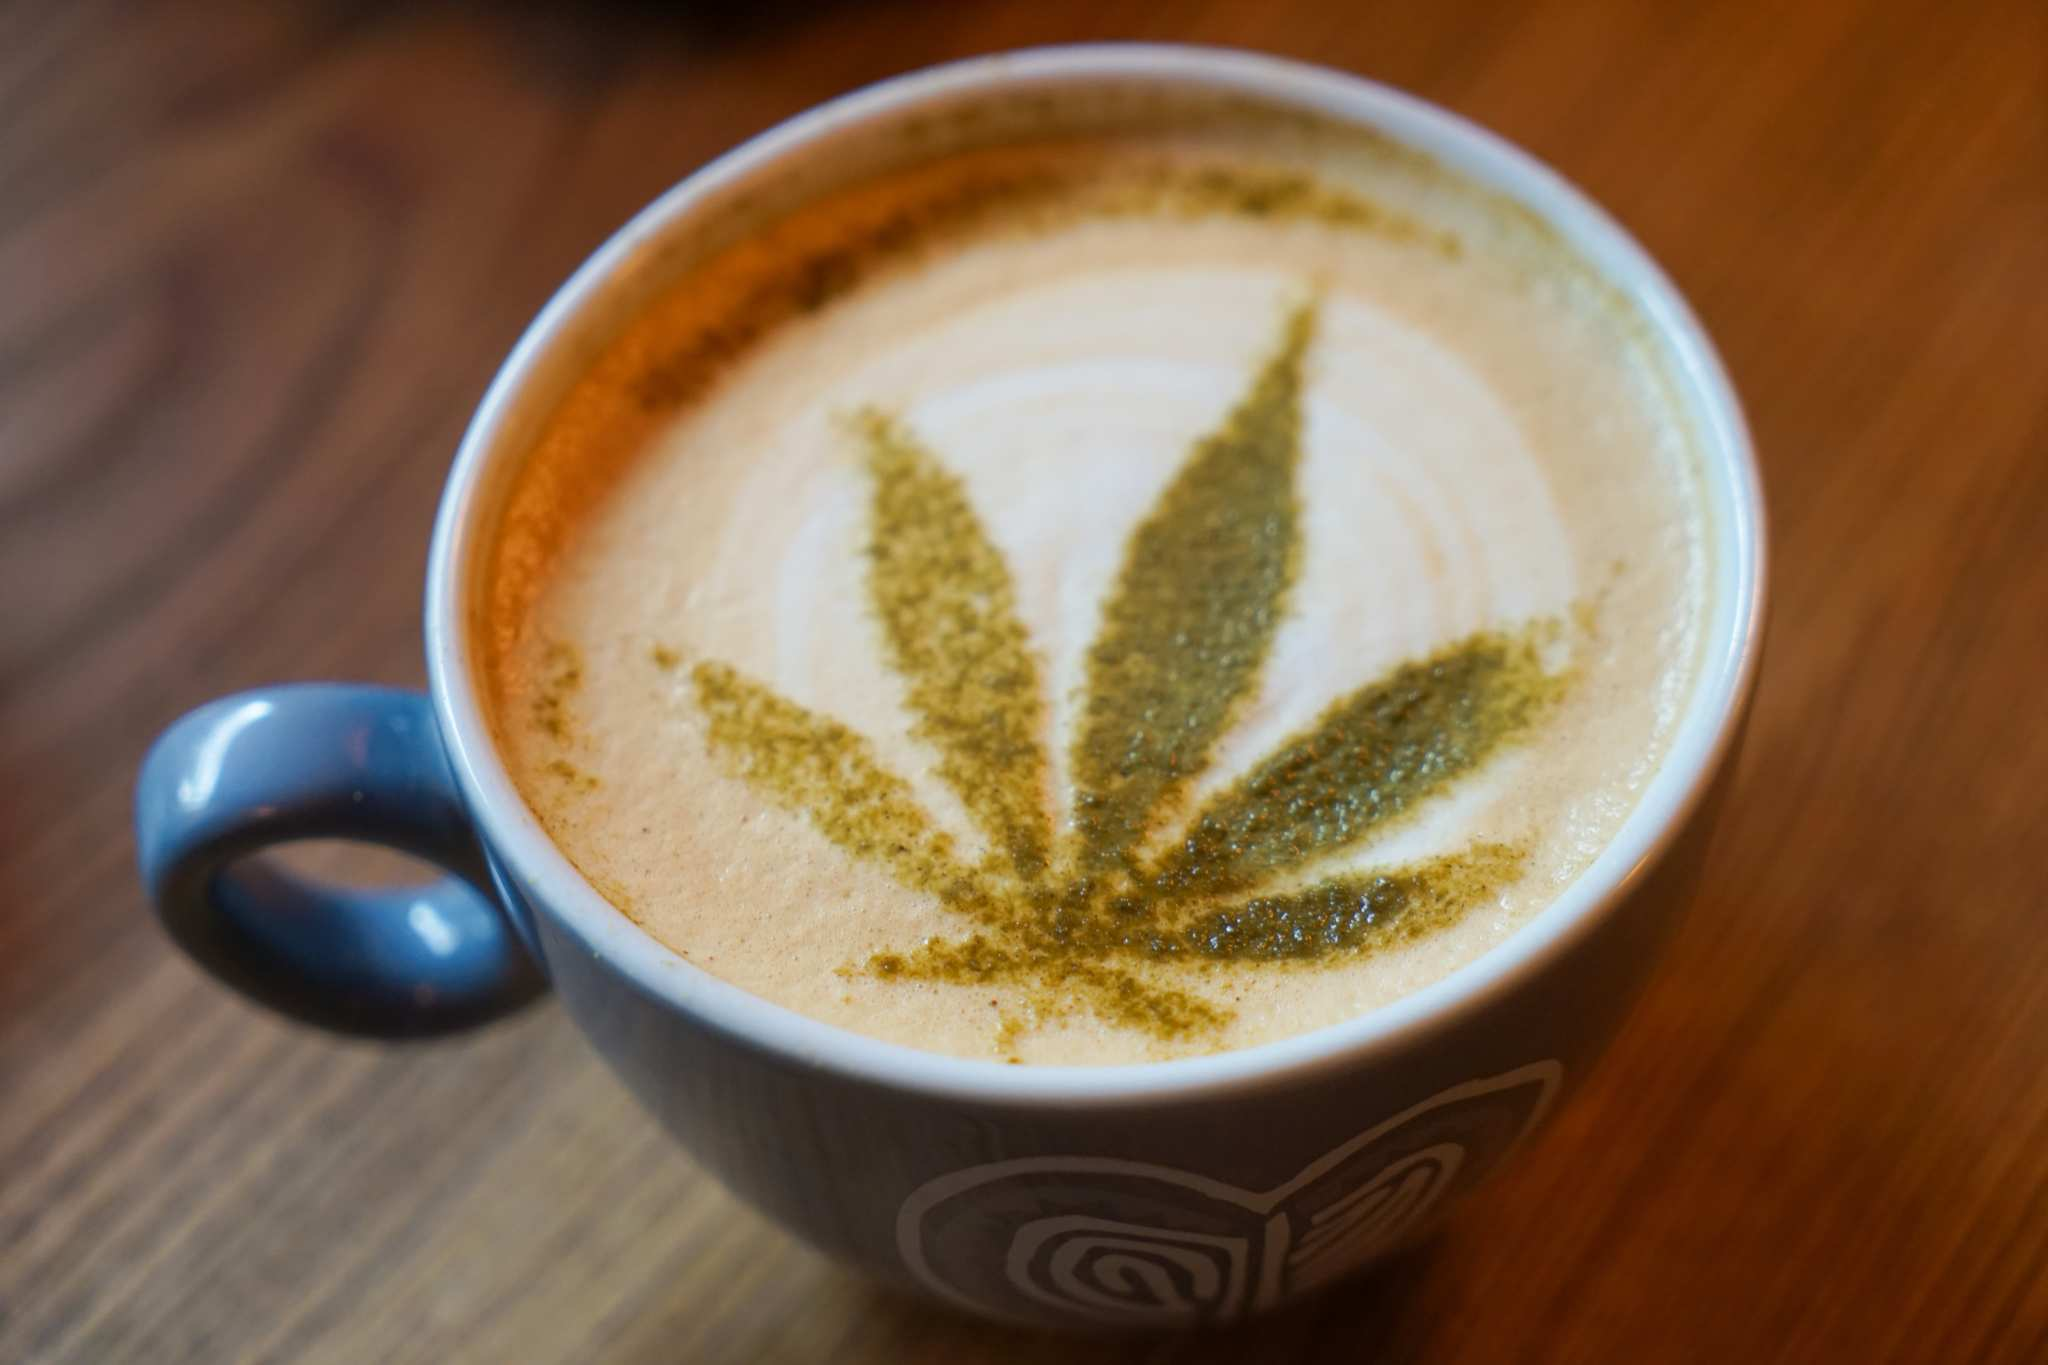 A coffee cup with a hemp leaf drawn in milk foam. Ready to get fancy with CBD coffee? Try this delicious, decadent peppermint CBD latte recipe.